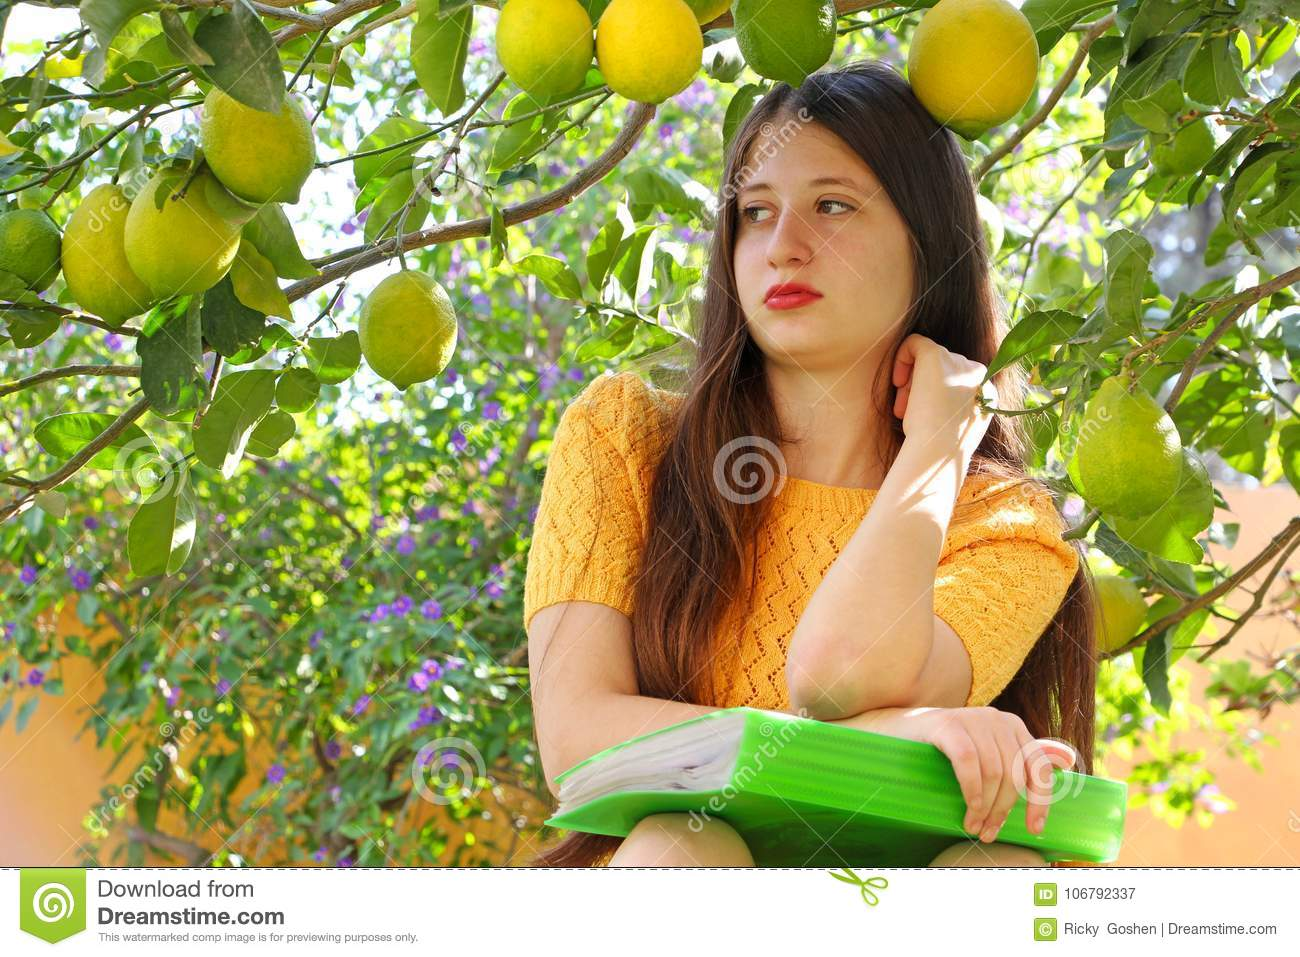 A teen age girl is learning in the garden under a lemon tree